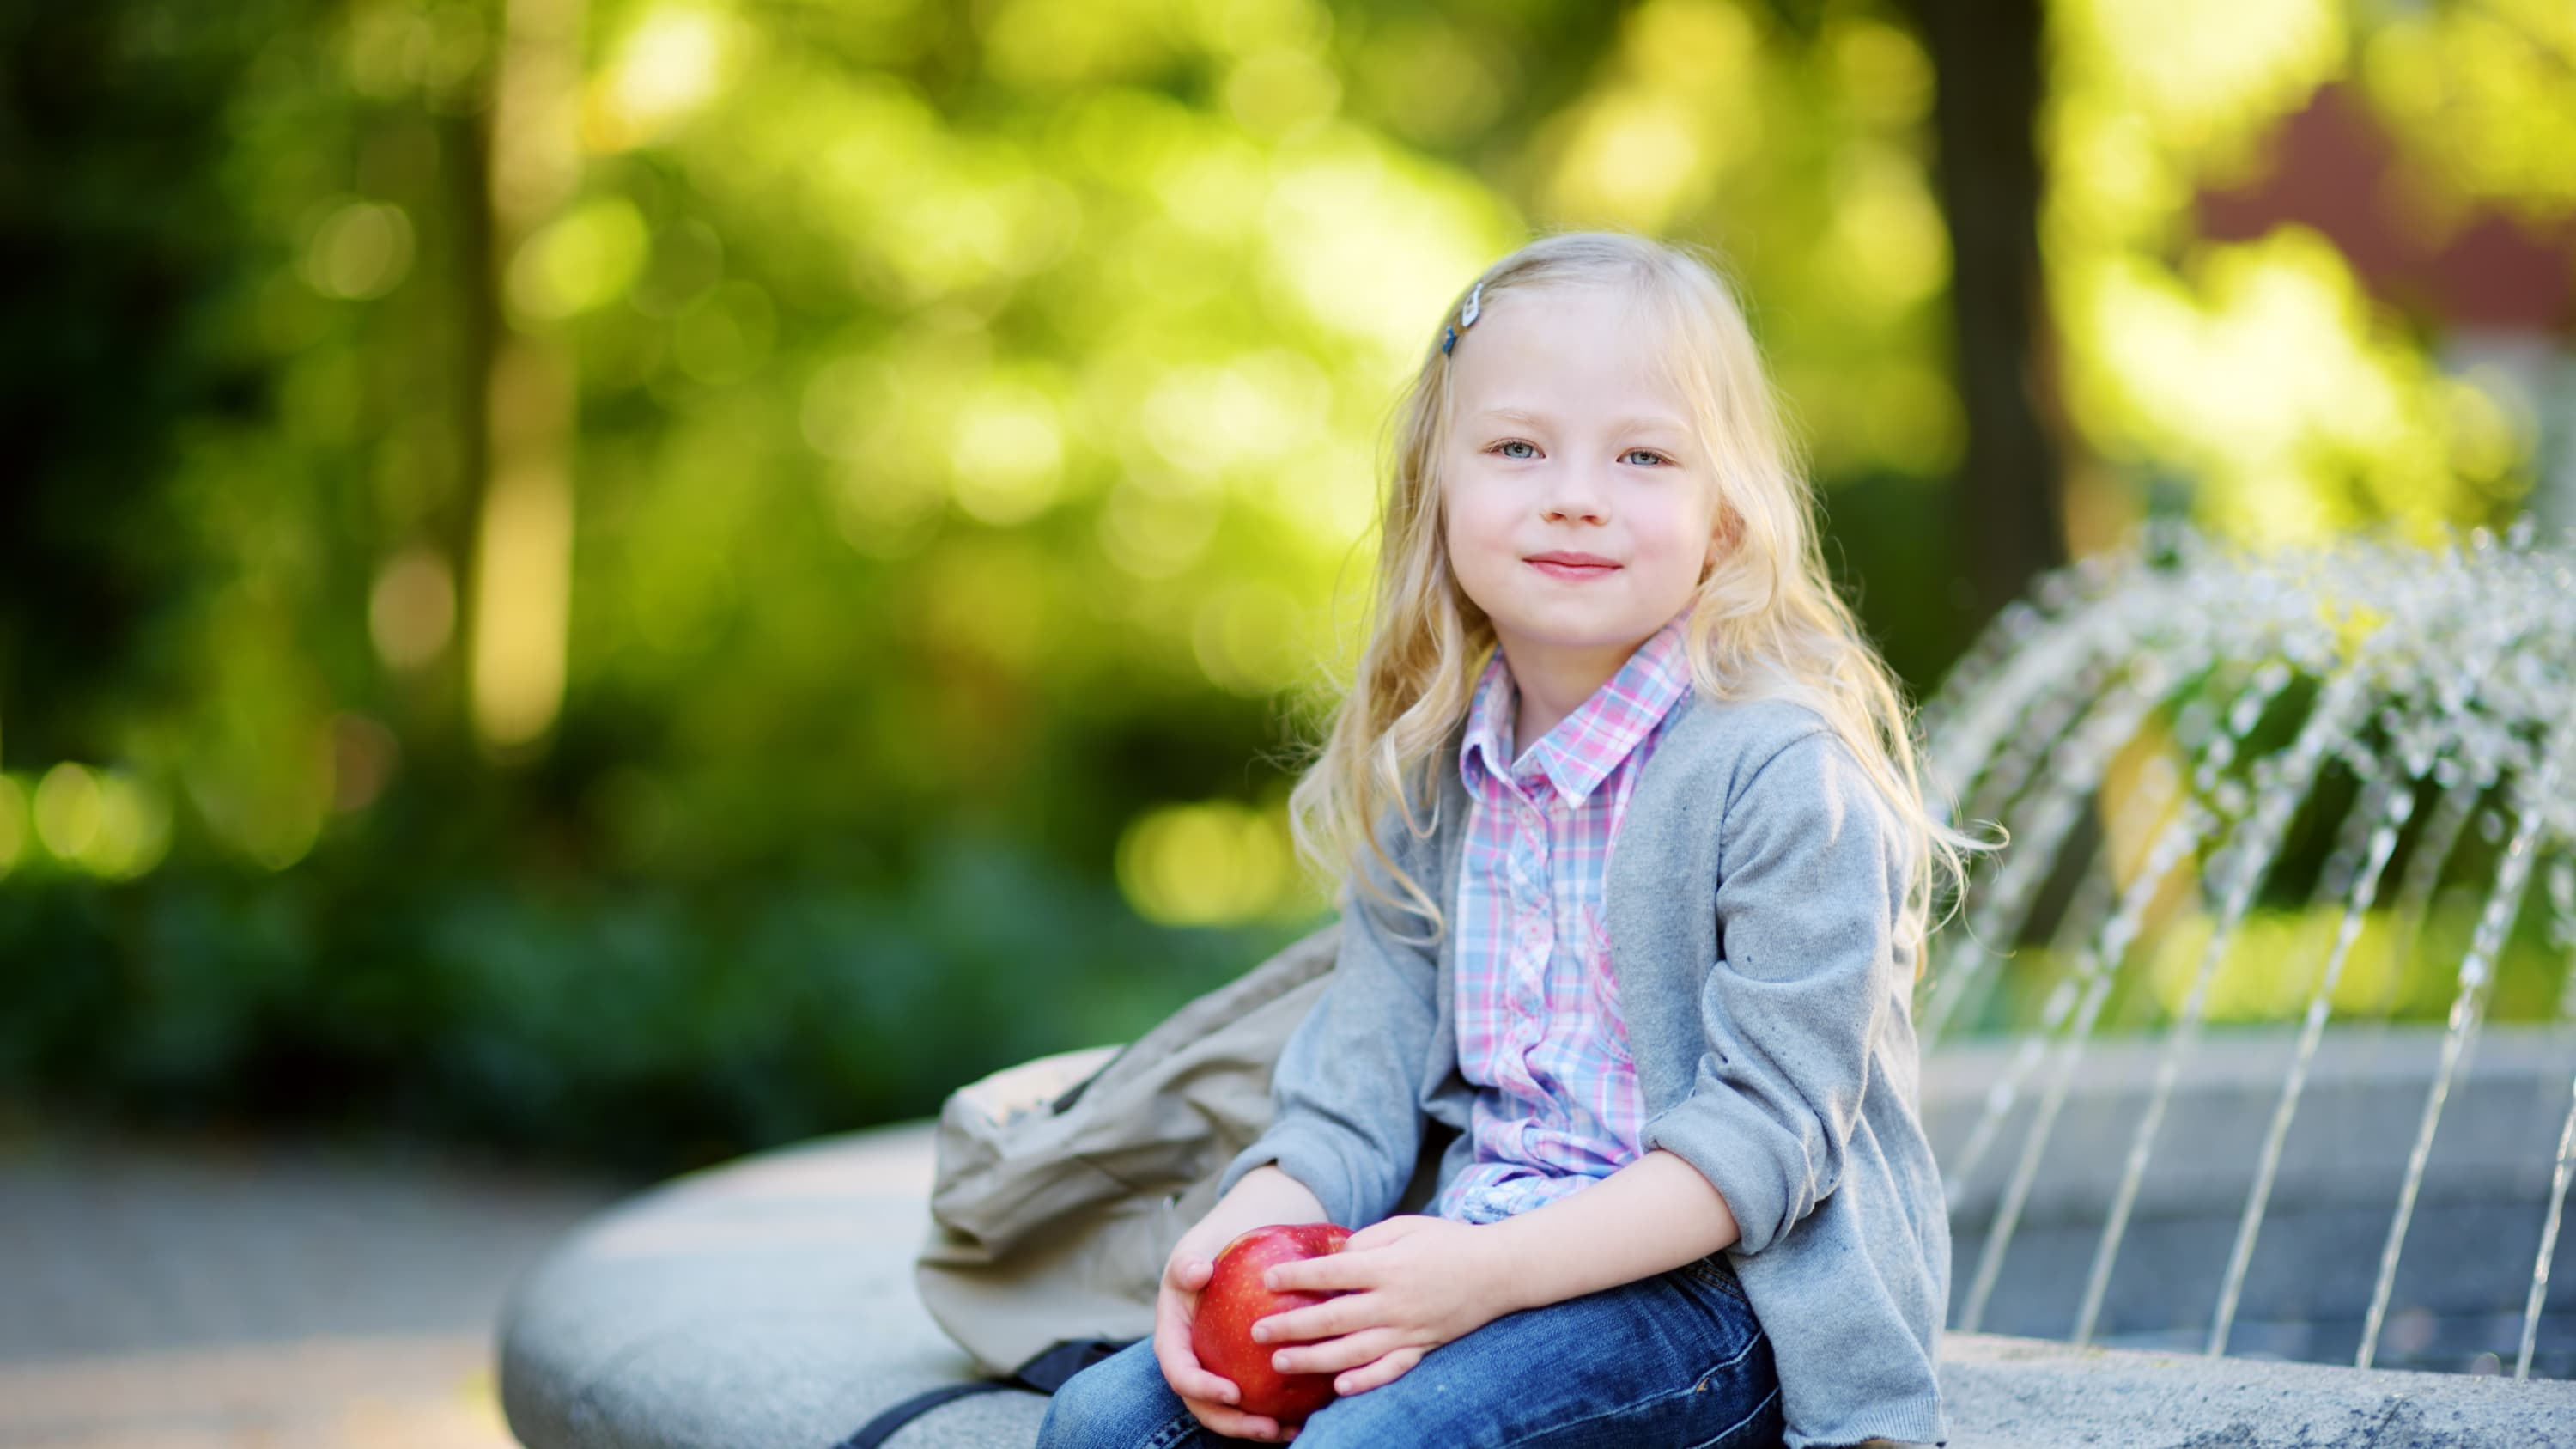 A girl, who could be a pediatric cancer survivor, is sitting on a the edge of a park fountain with an apple in her hand.